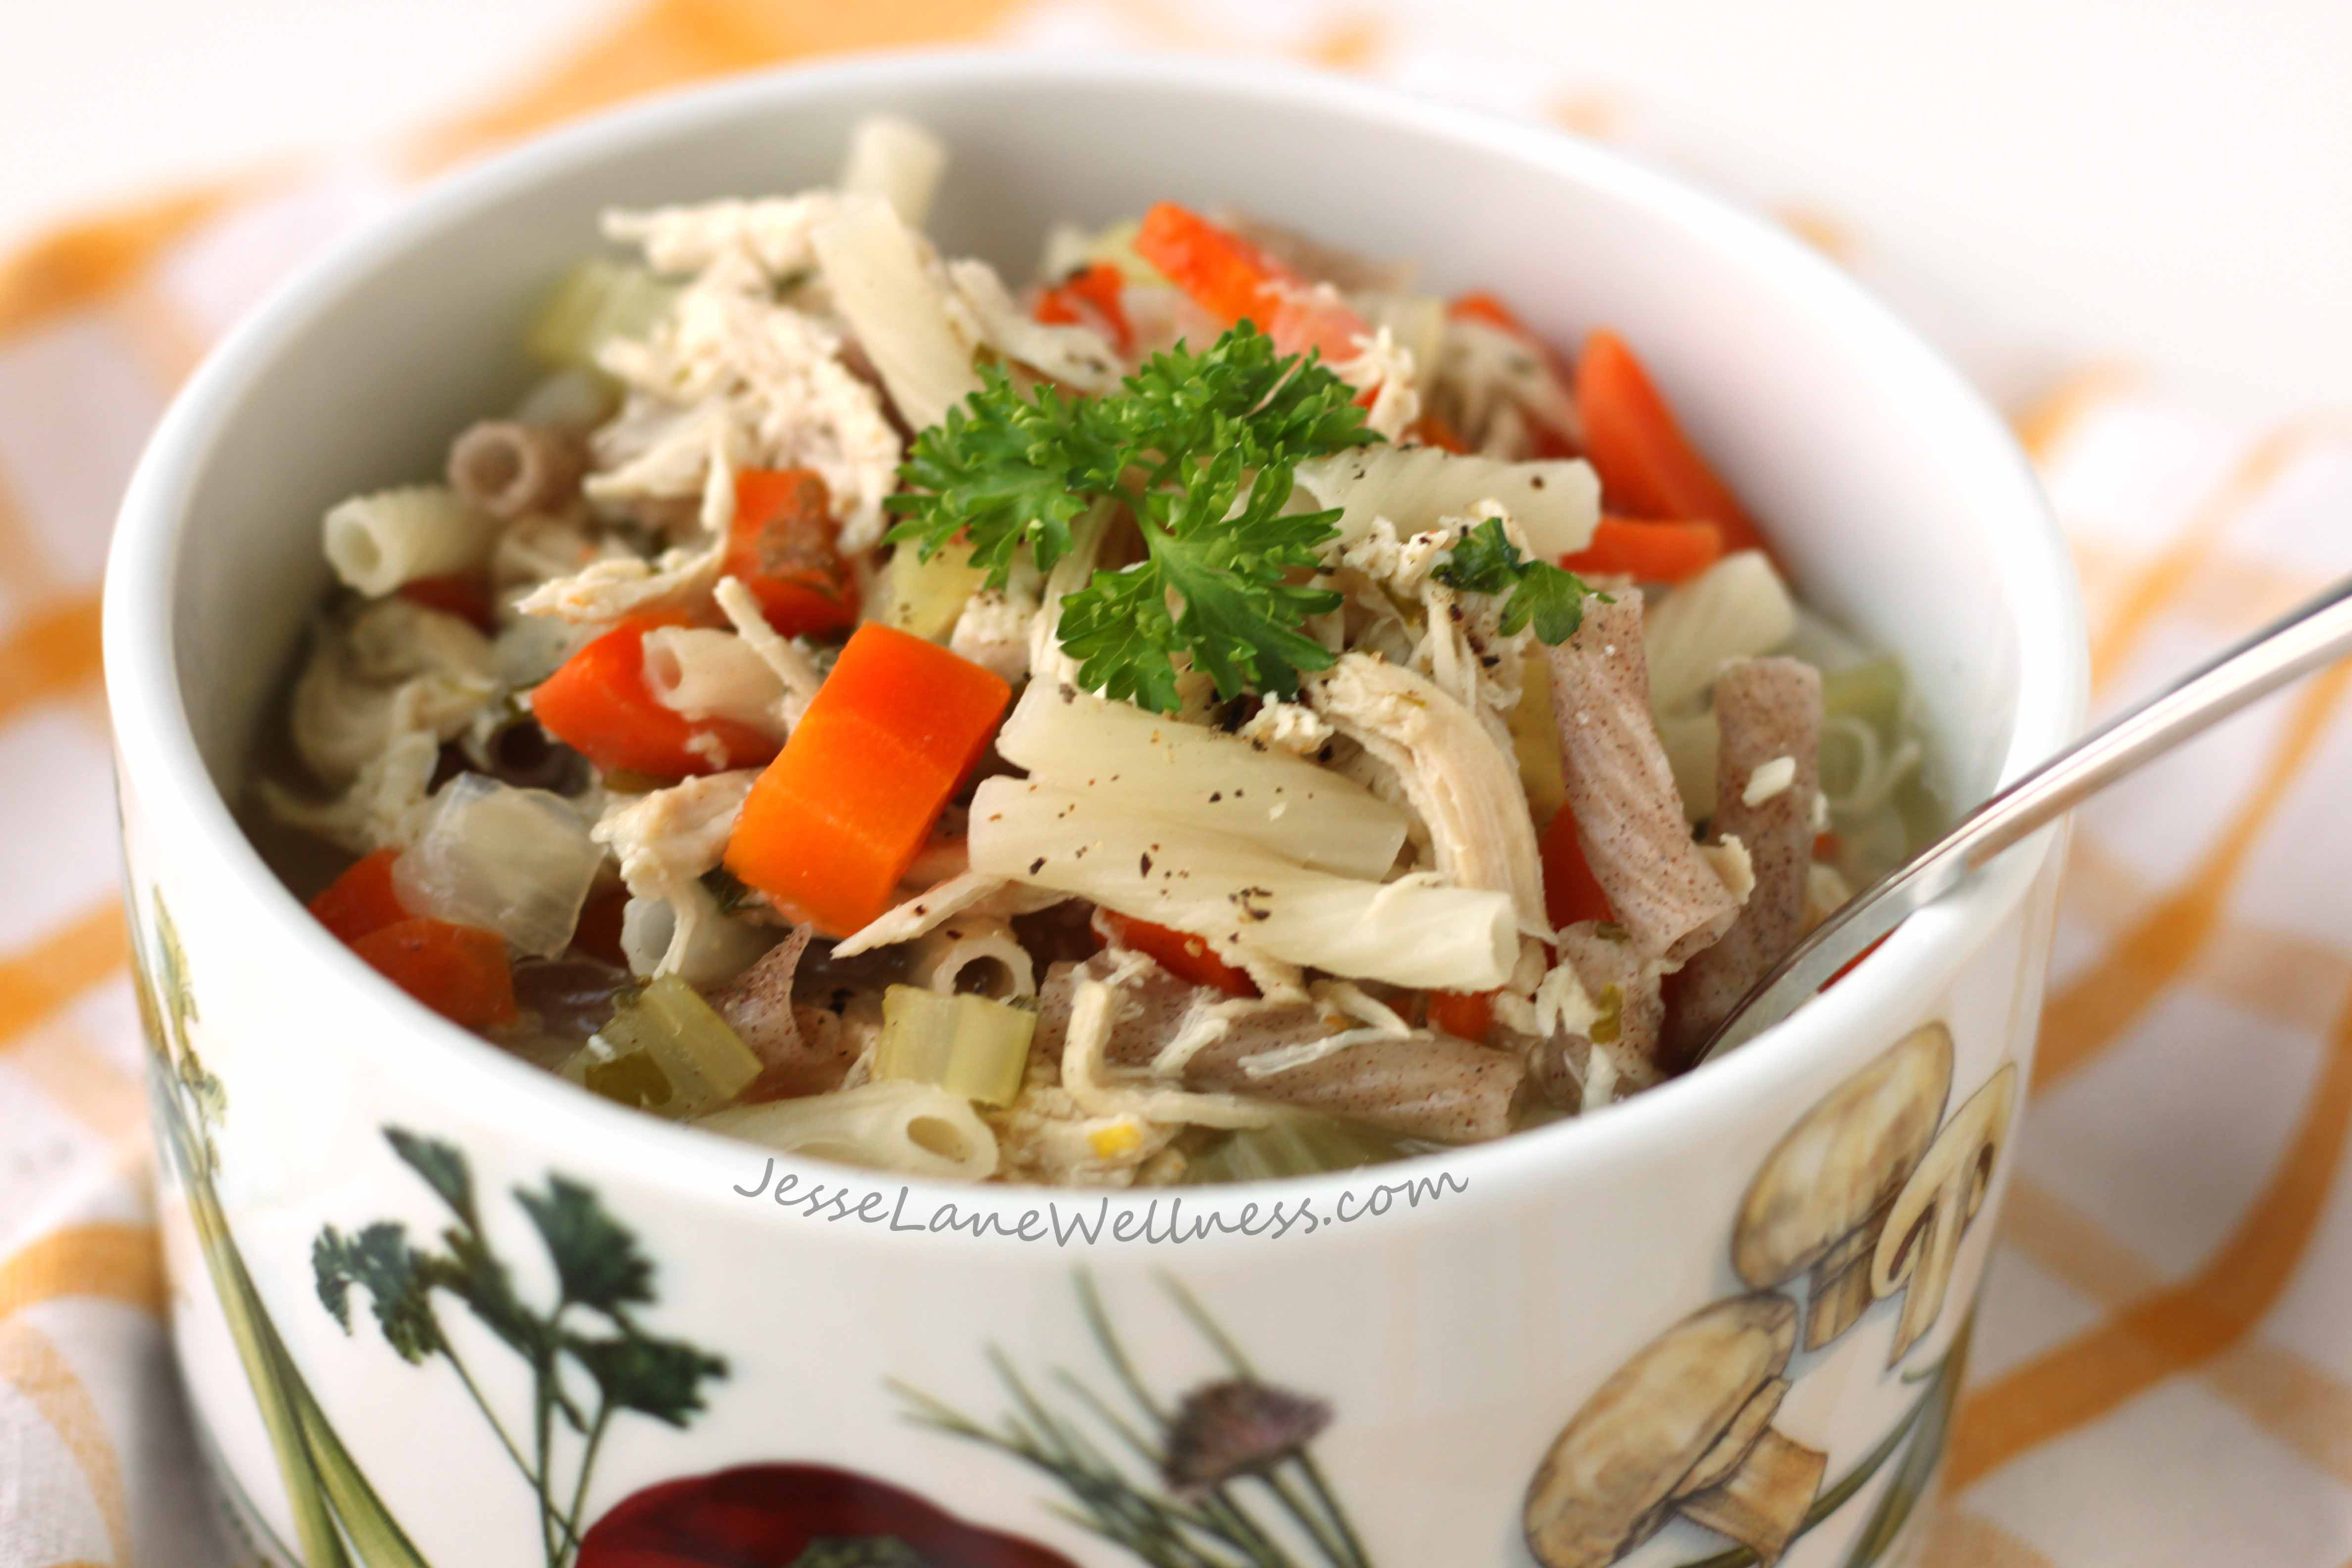 Is Chicken Soup Healthy  Healthy Chicken Noodle Soup Recipe by Jesse Lane Wellness